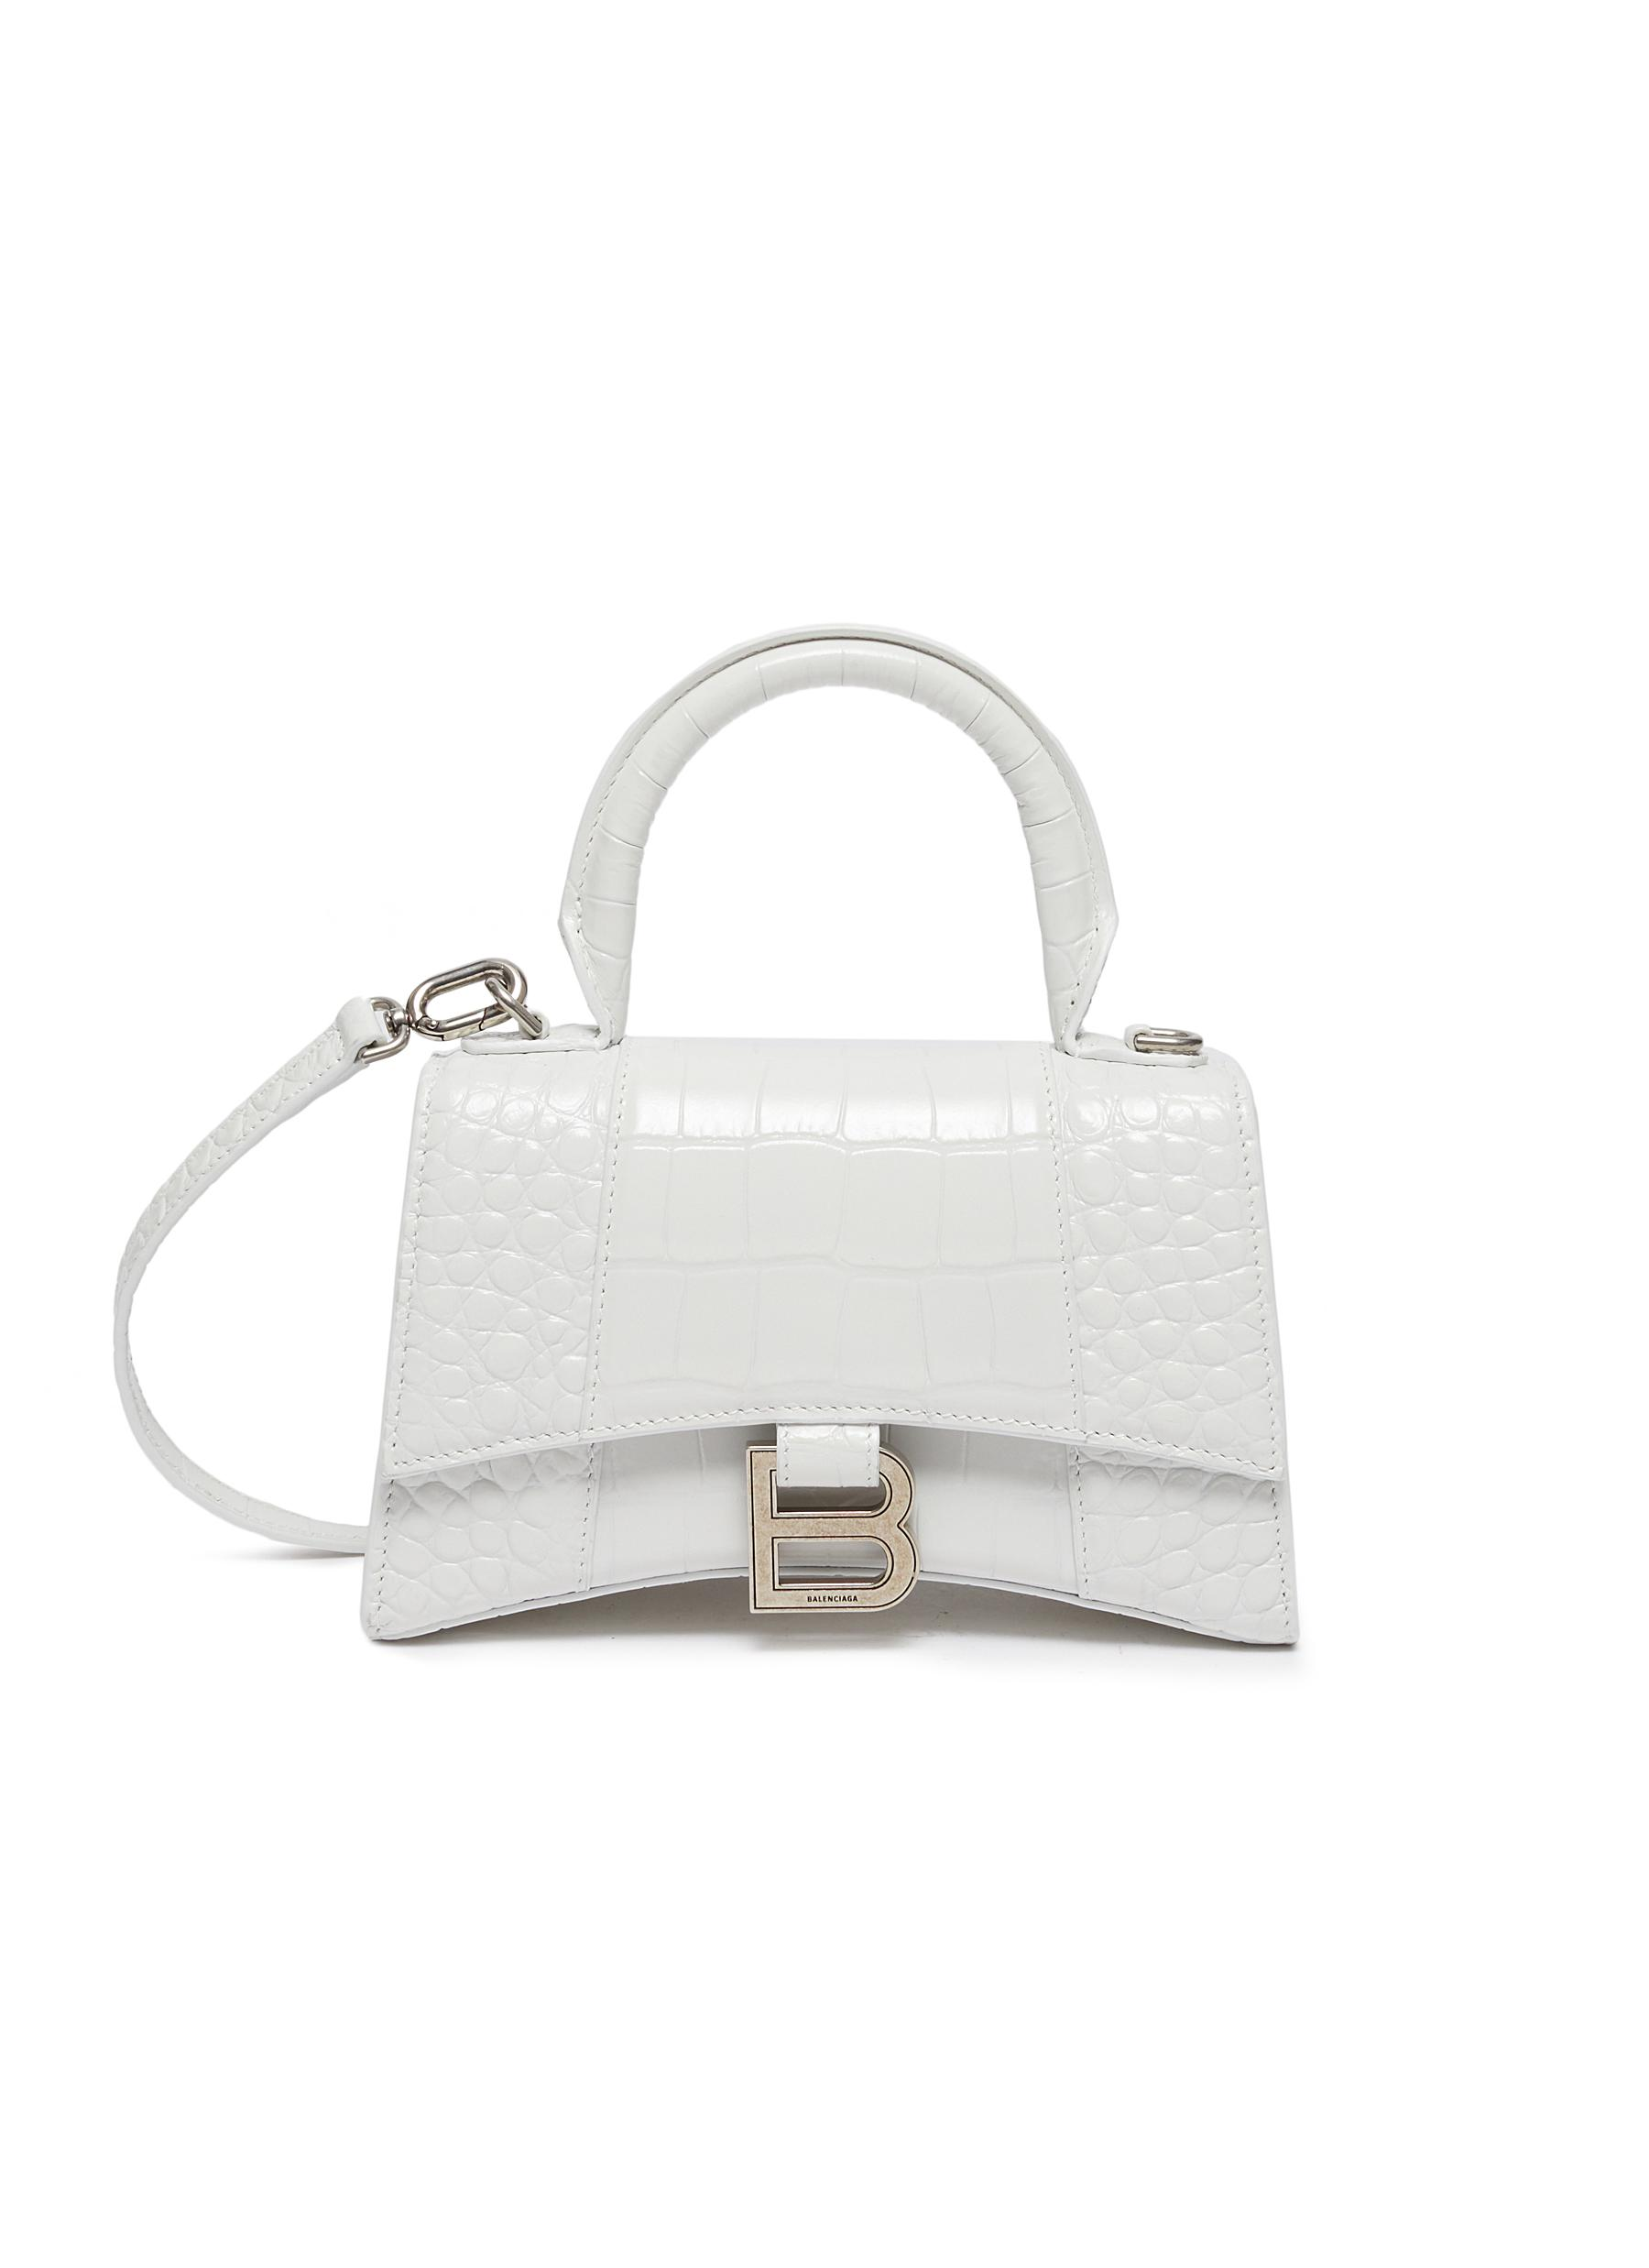 Balenciaga 'hourglass Xs' Croc Embossed Leather Shoulder Bag In White